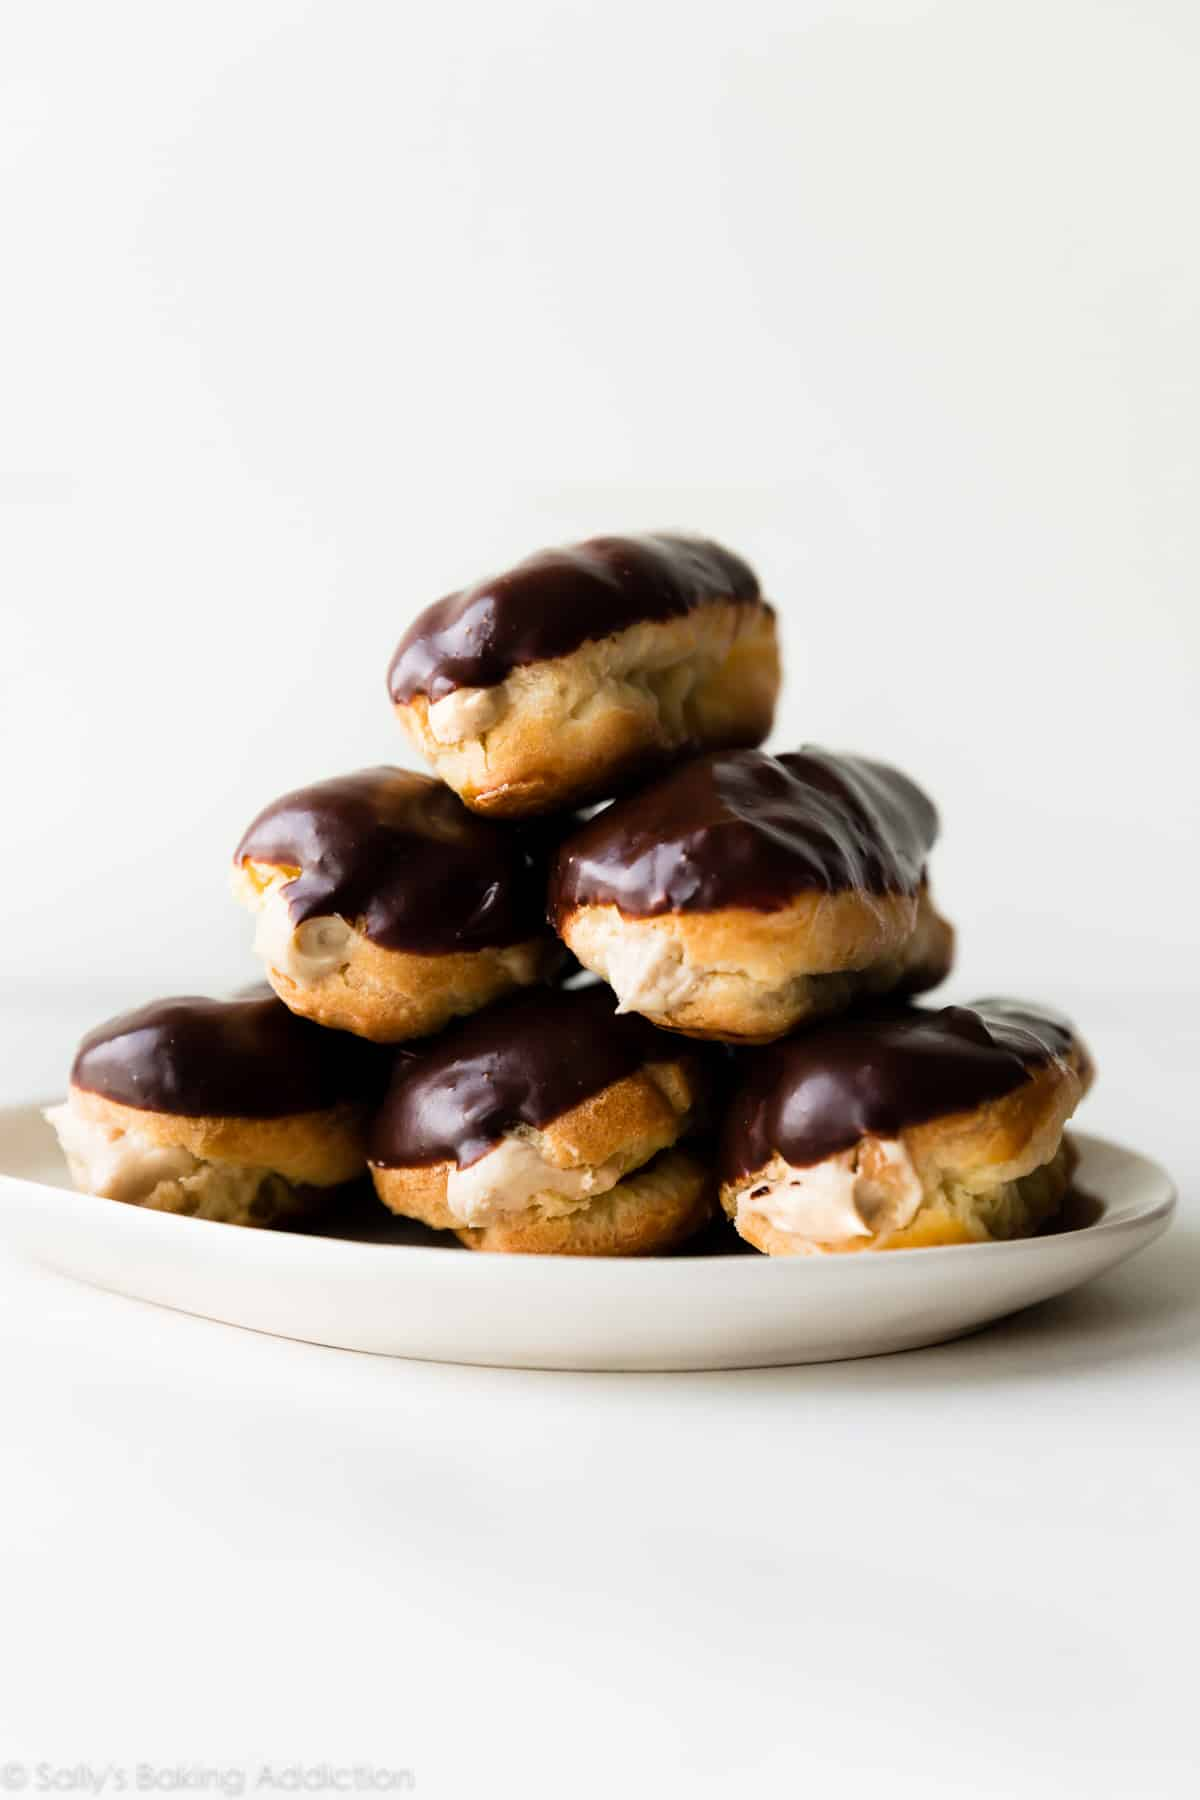 Homemade Eclairs with Peanut Butter Mousse Filling | Sally ...